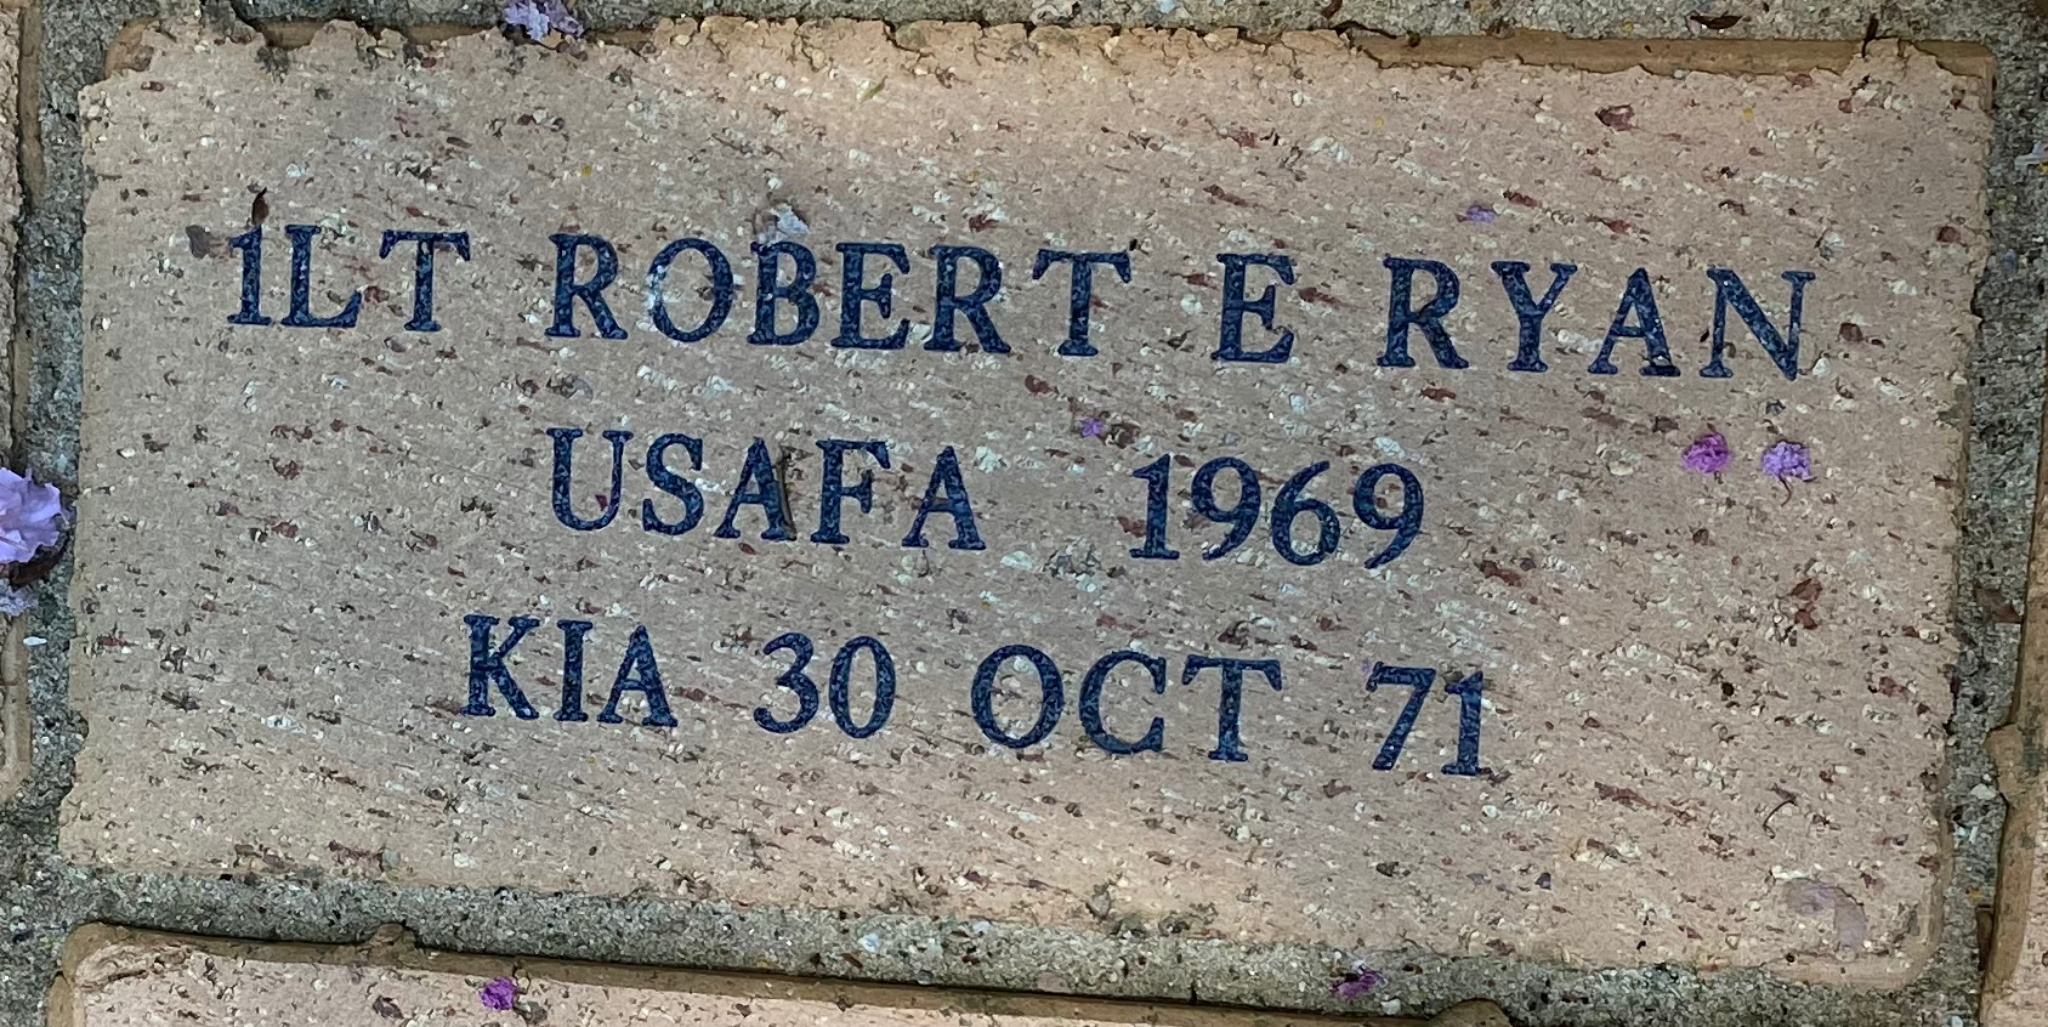 1LT ROBERT E RYAN USAFA 1969 KIA 30 OCT 71